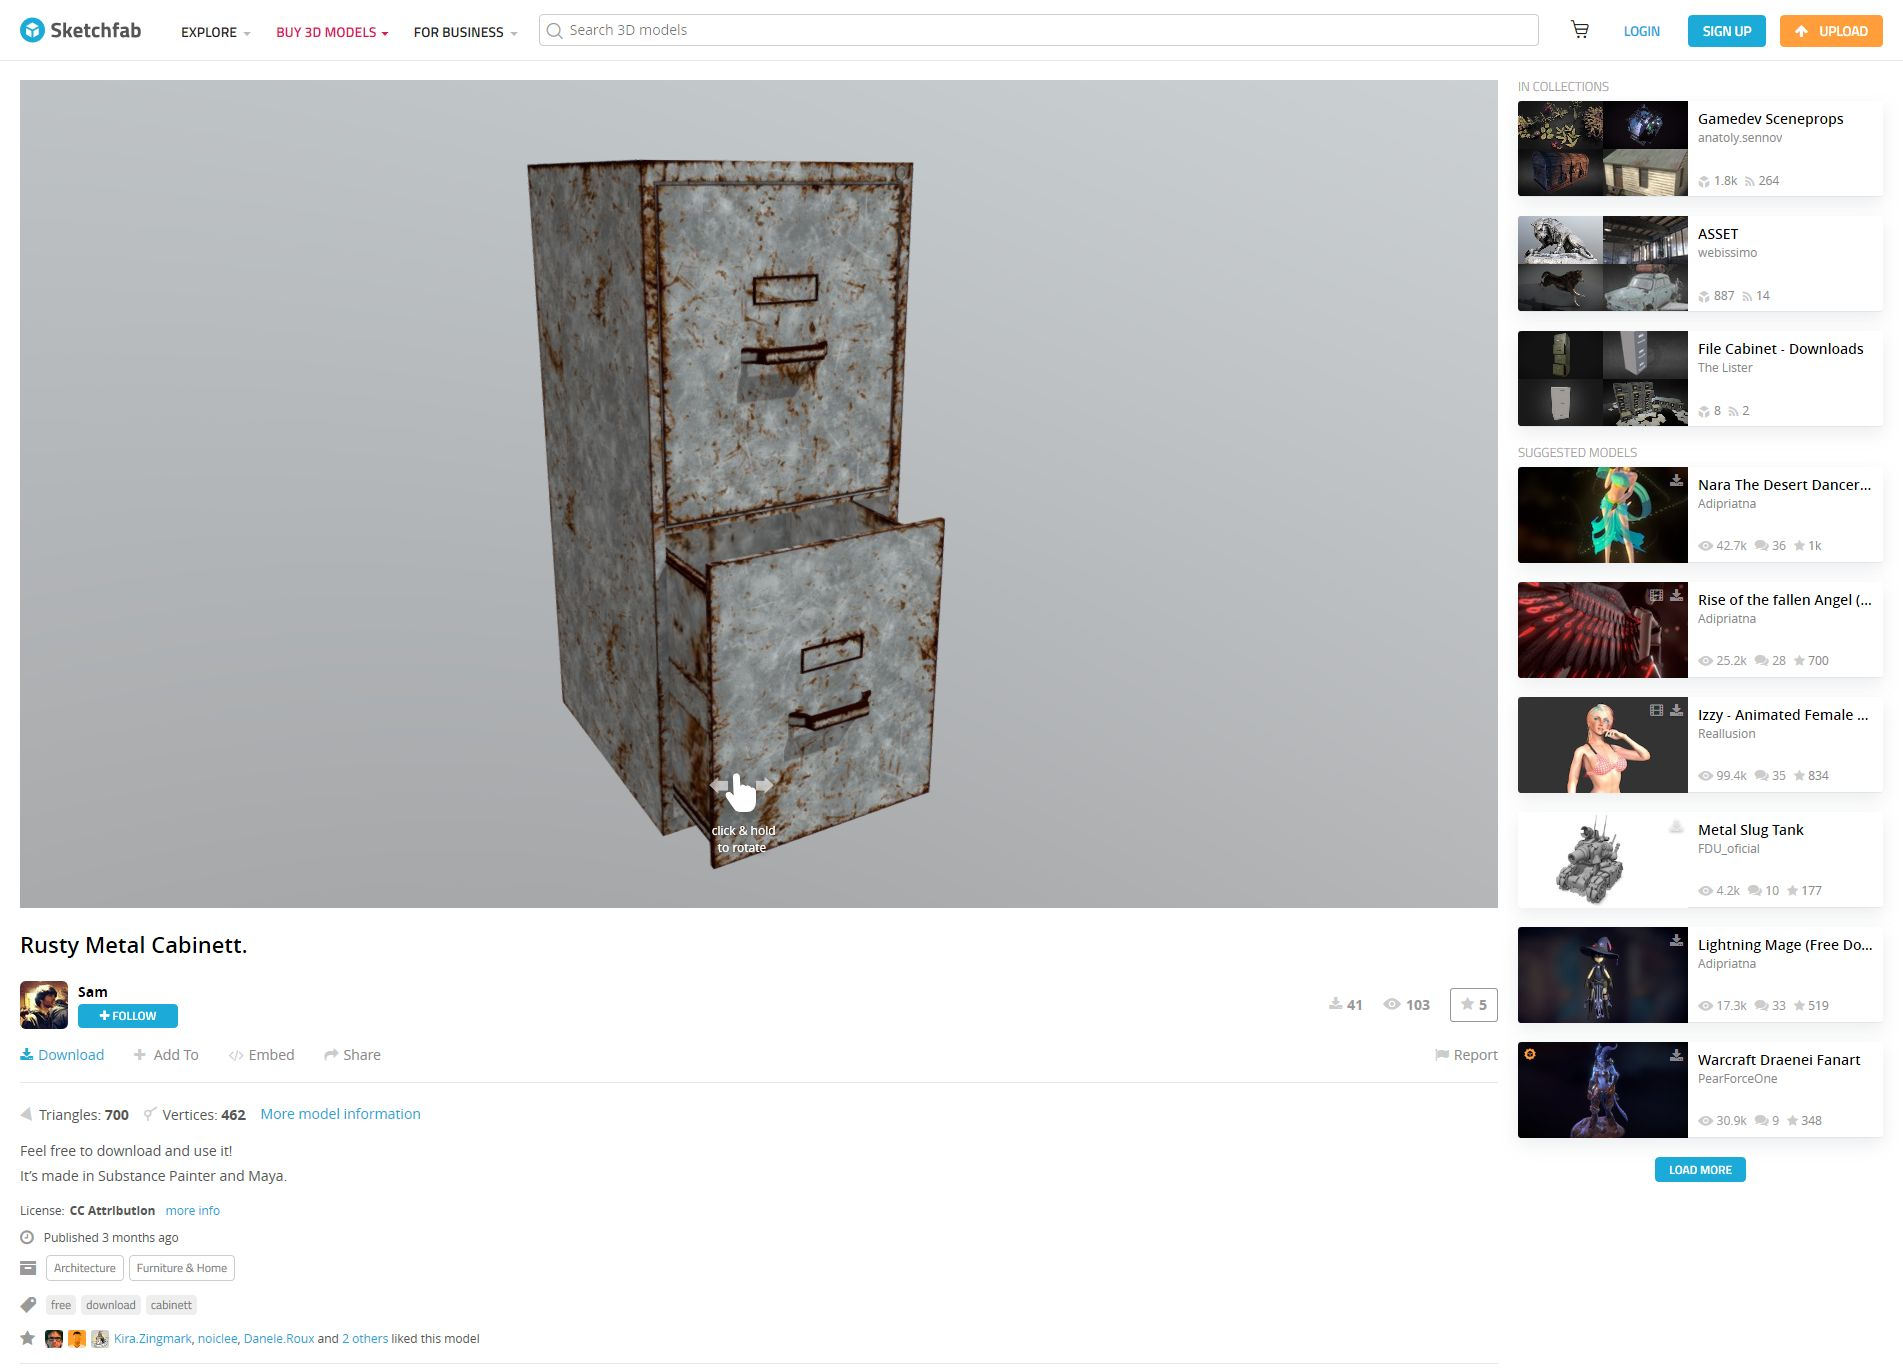 Rusty Metal Cabinet on Sketchfab